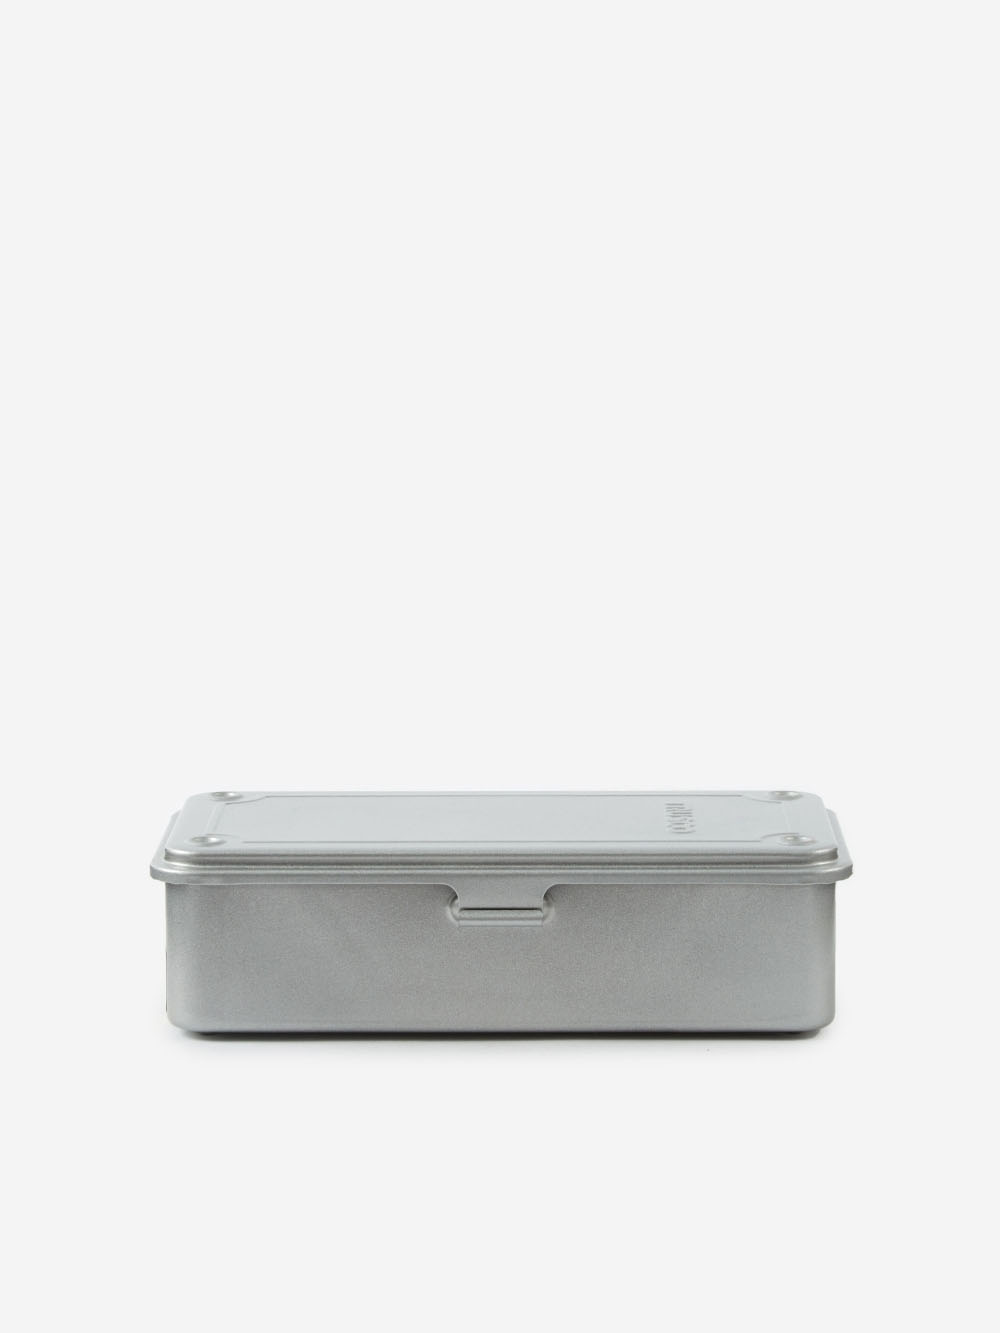 Storage | Goodhood